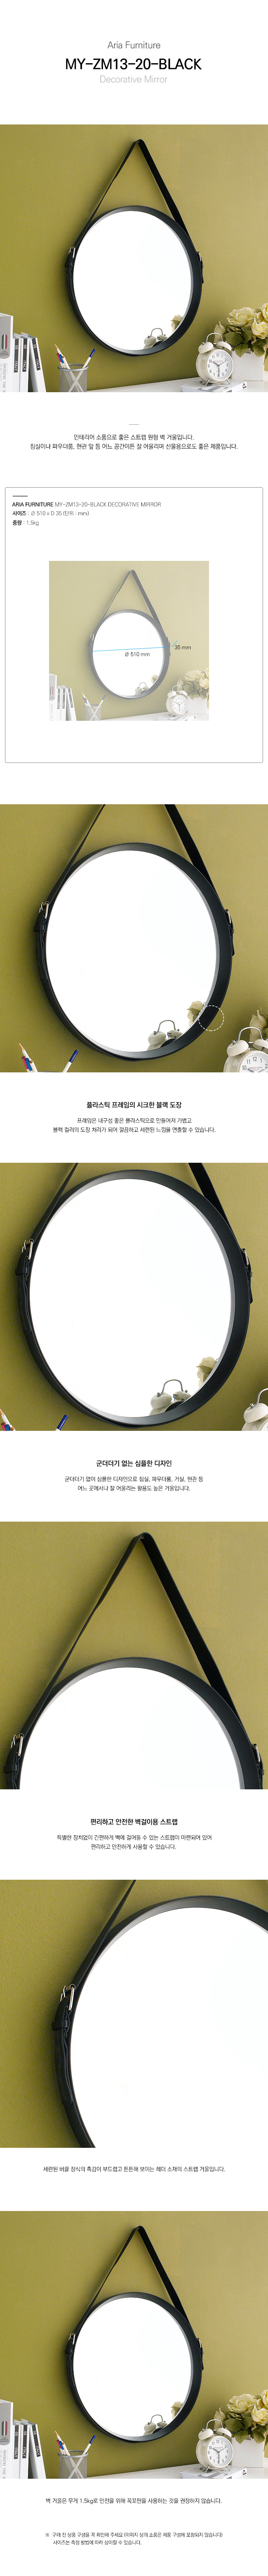 8_11_MY-ZM13-20_Wall_Mirror.jpg